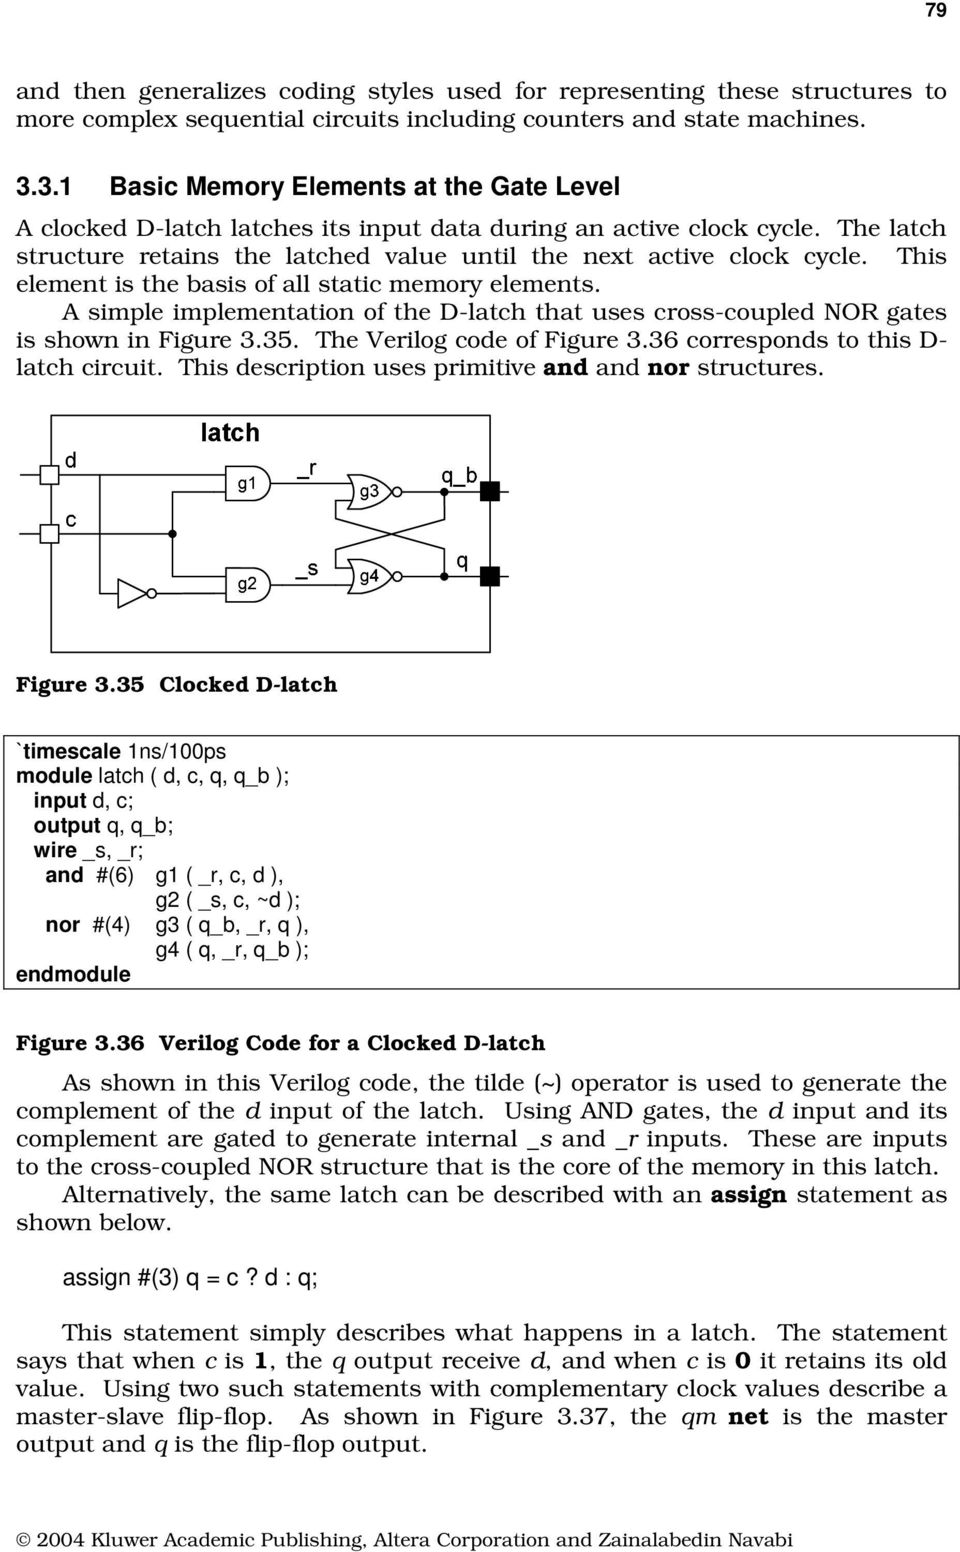 3 3 1 Basic Memory Elements at the Gate Level - PDF